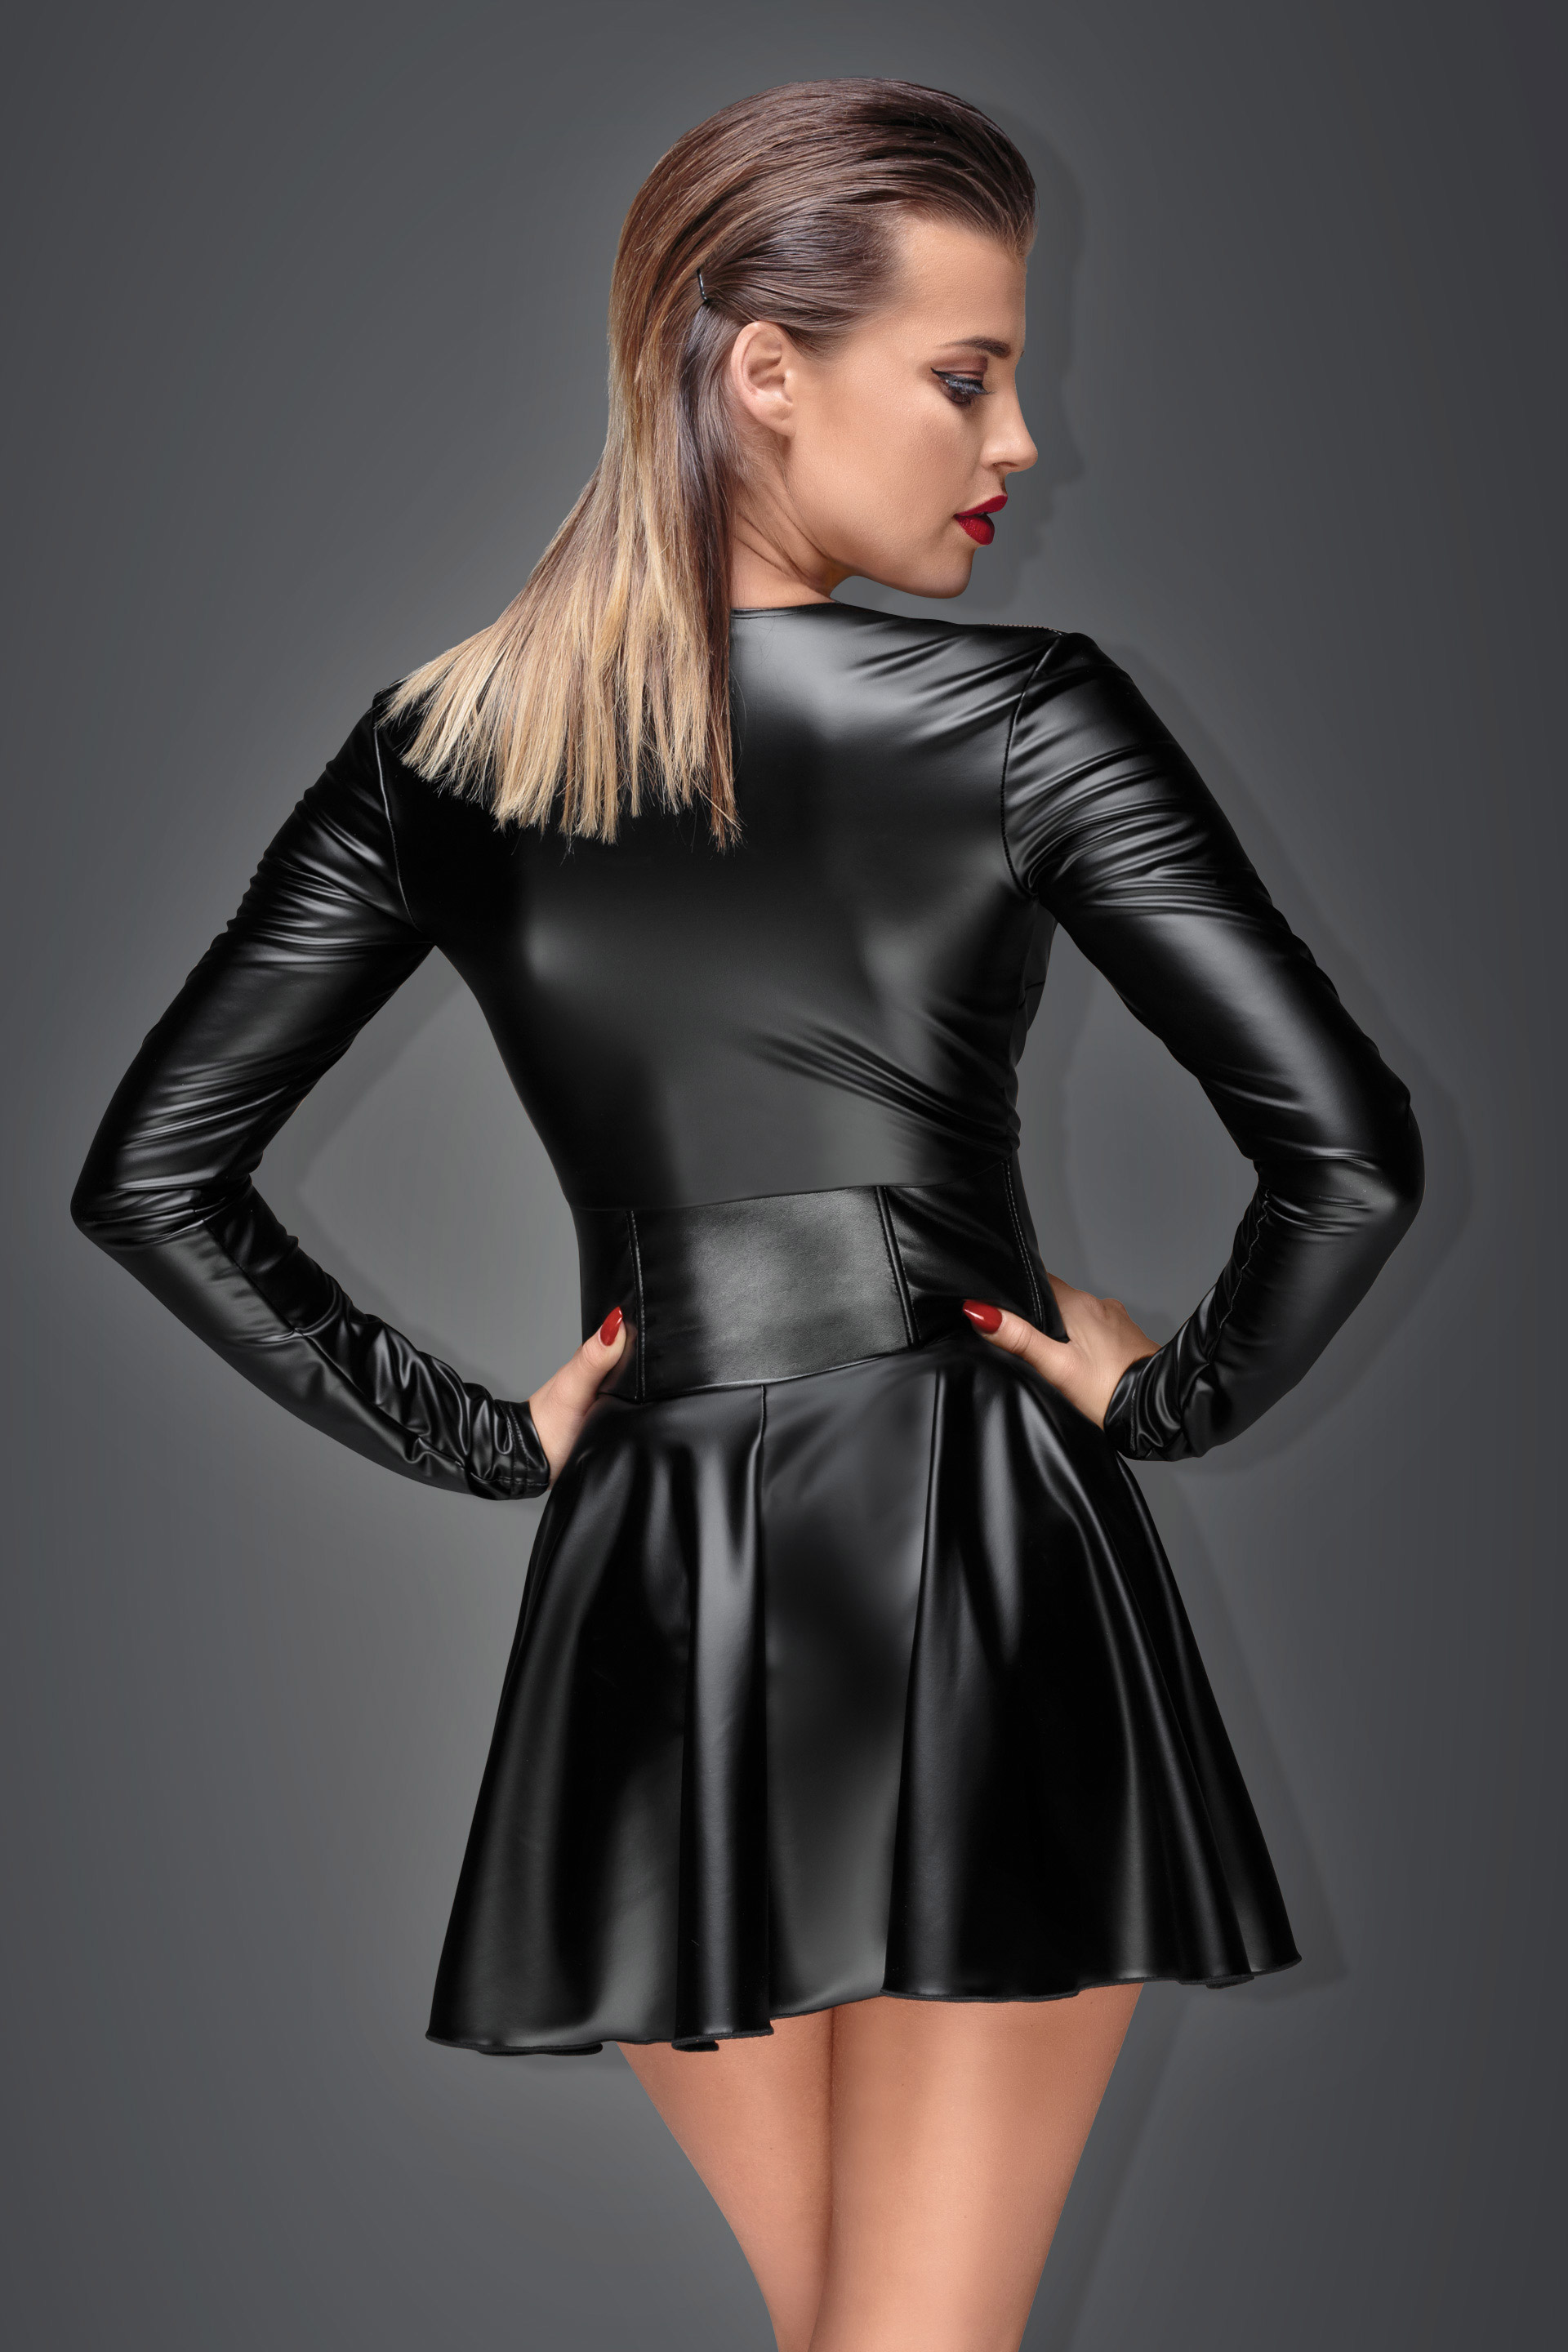 F154 Minikleid aus elastischem Powerwetlook